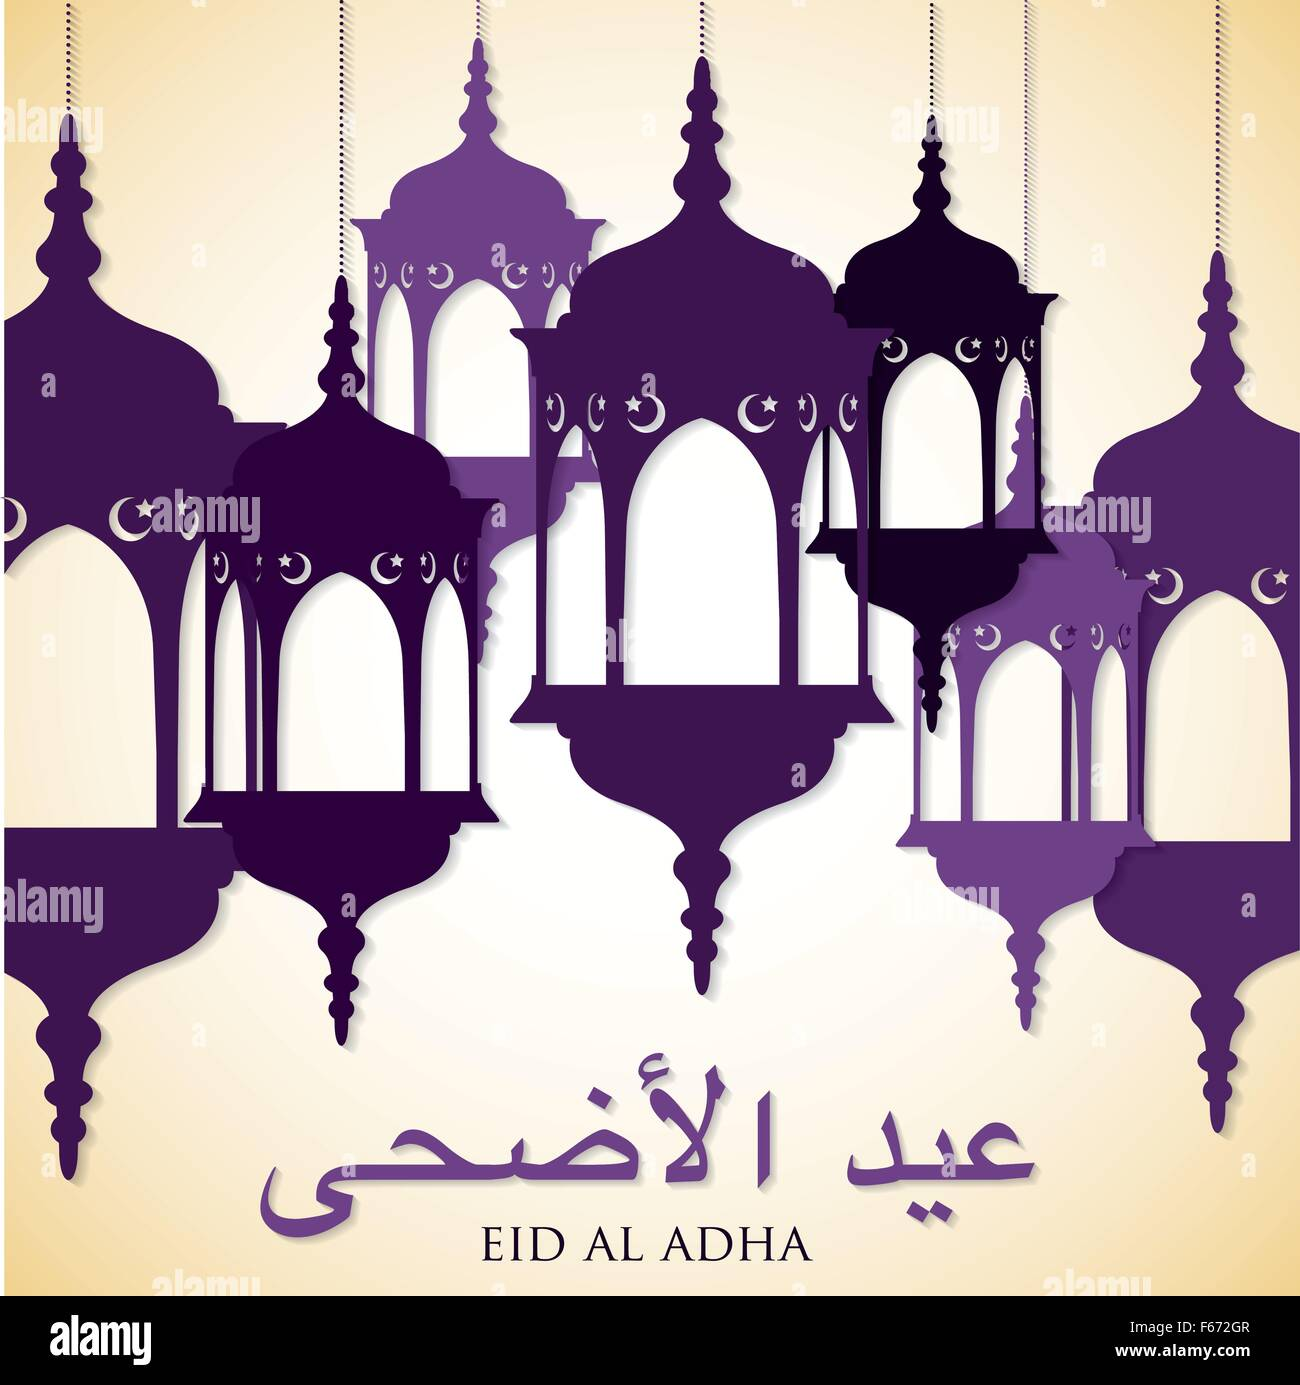 lantern eid al adha card in vector format stock vector art